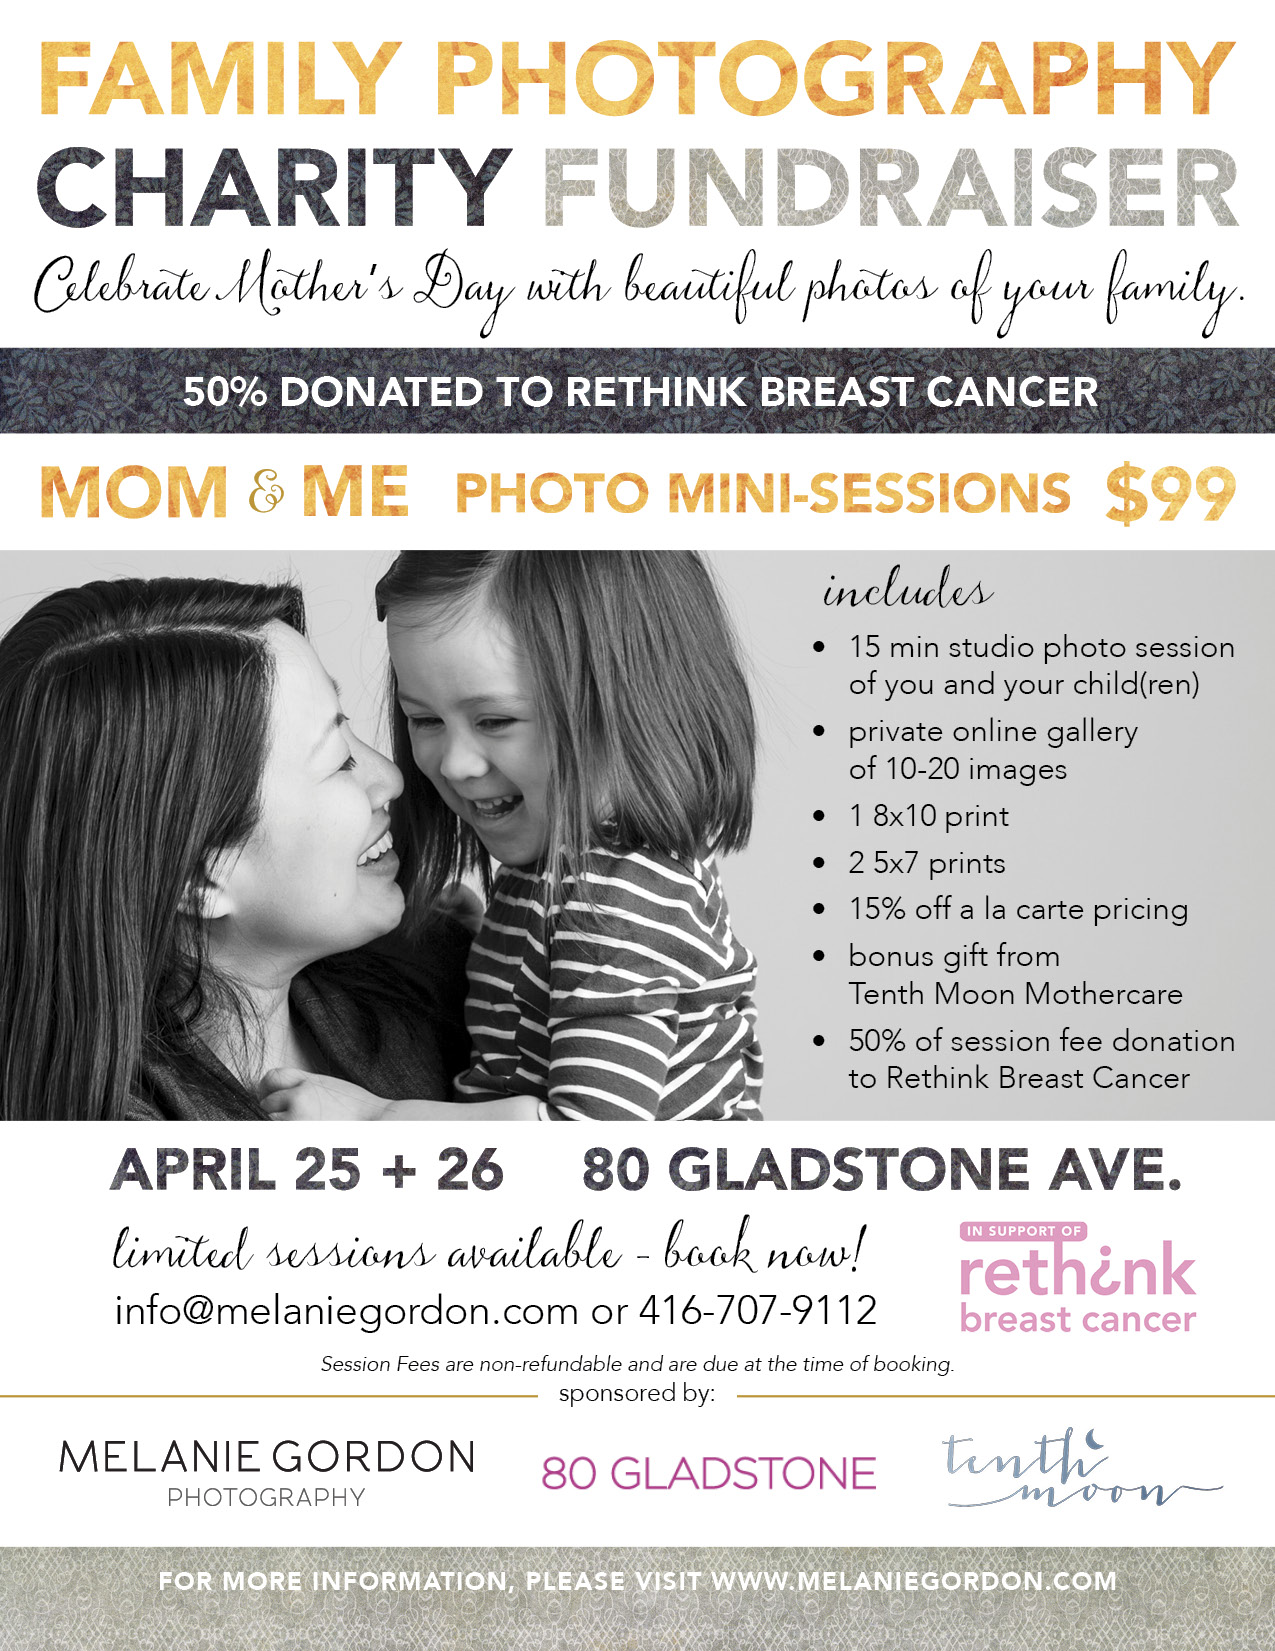 Toronto Charity Family Photography Fundraiser for Rethink Breast Cancer